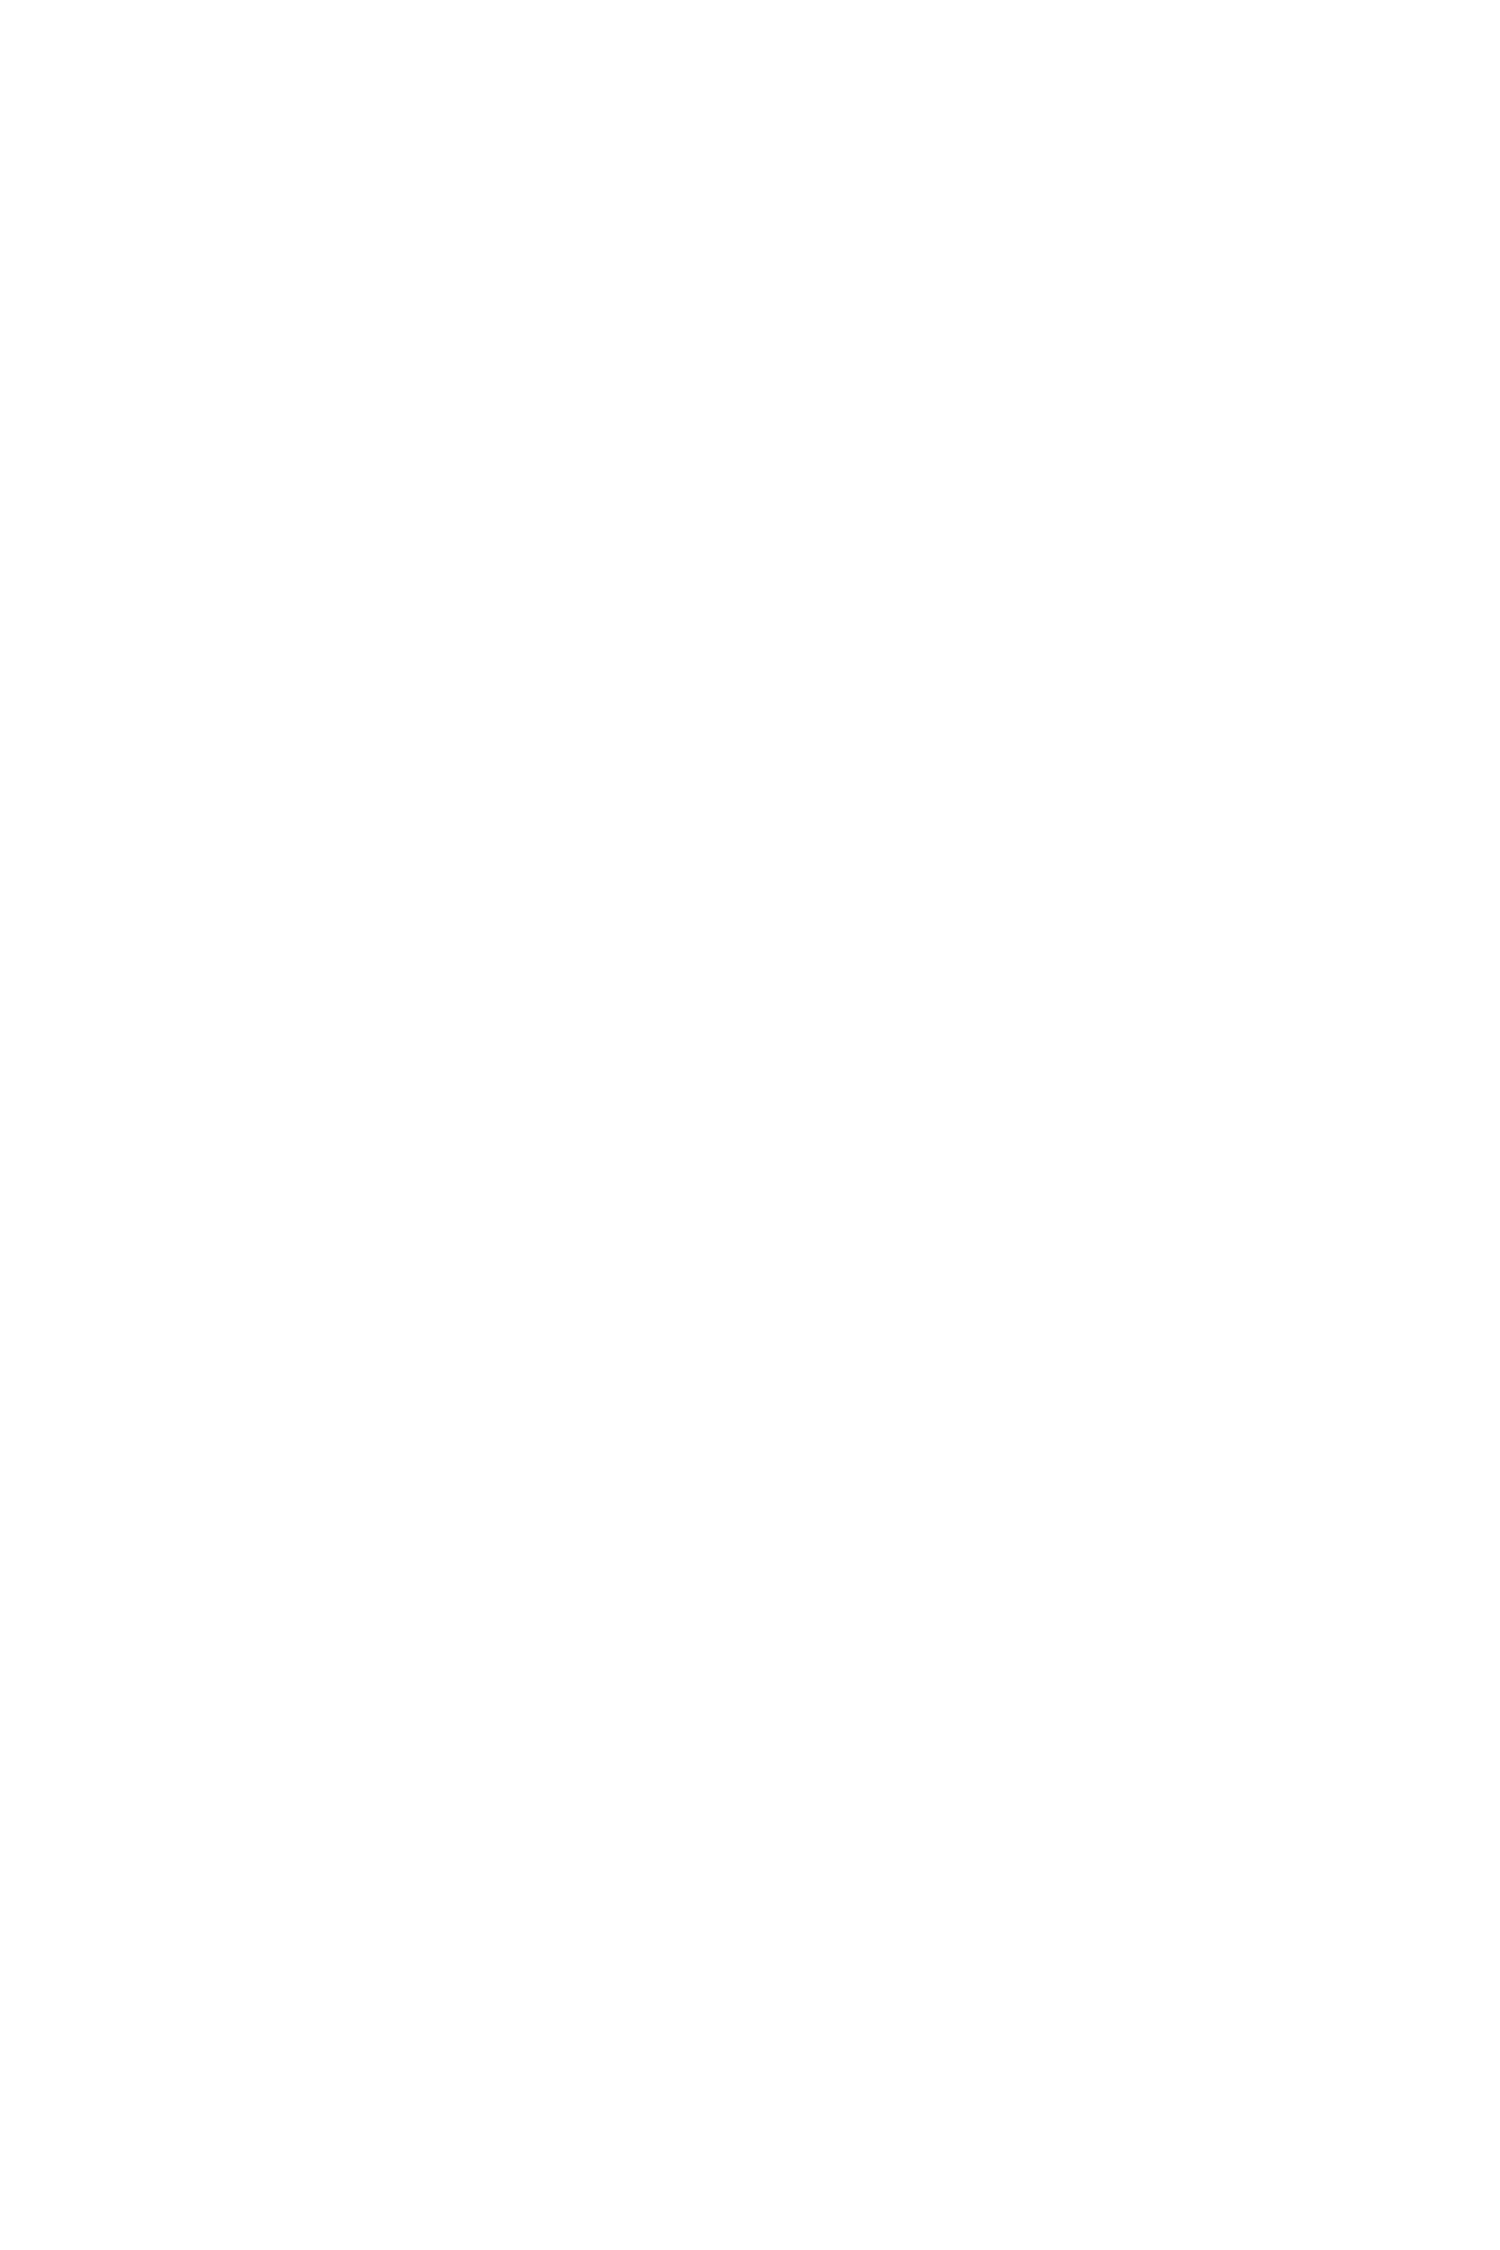 Masfino Chocolate Company